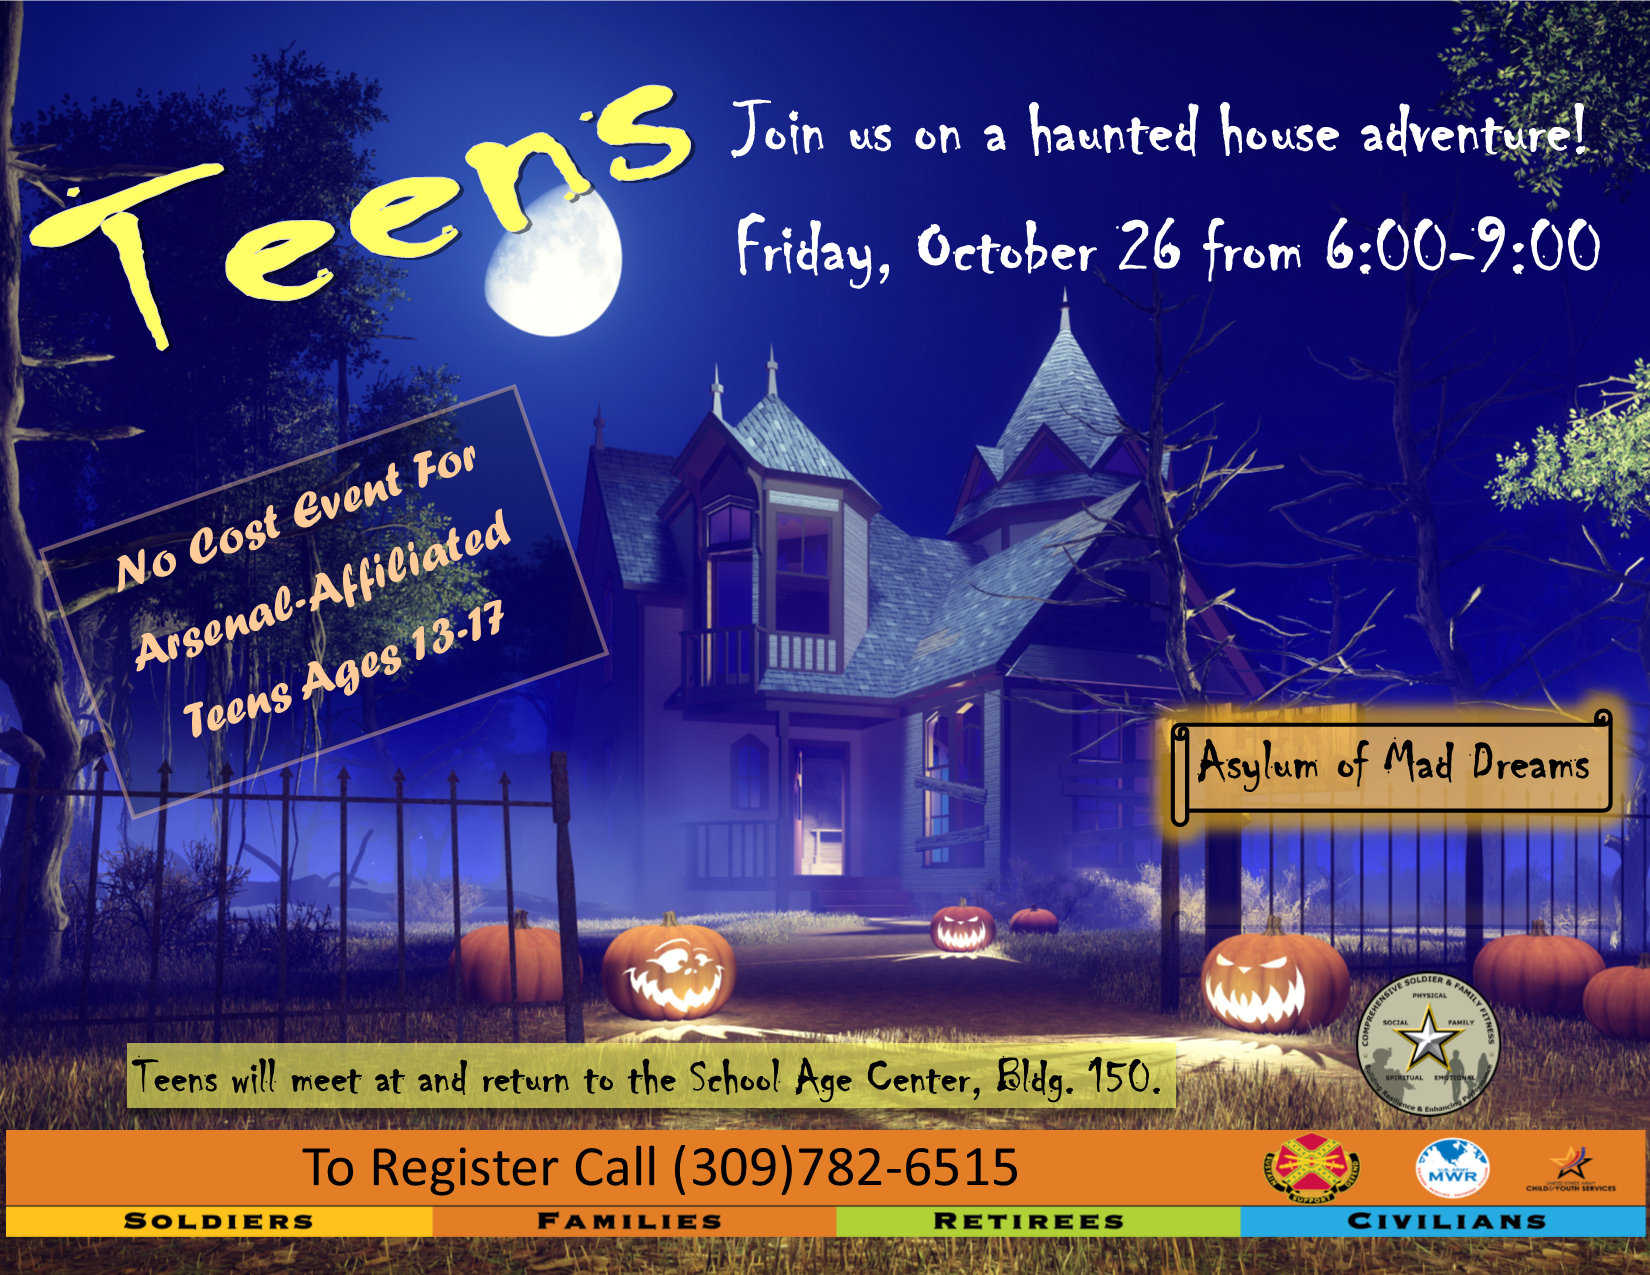 Teen Haunted House Trip